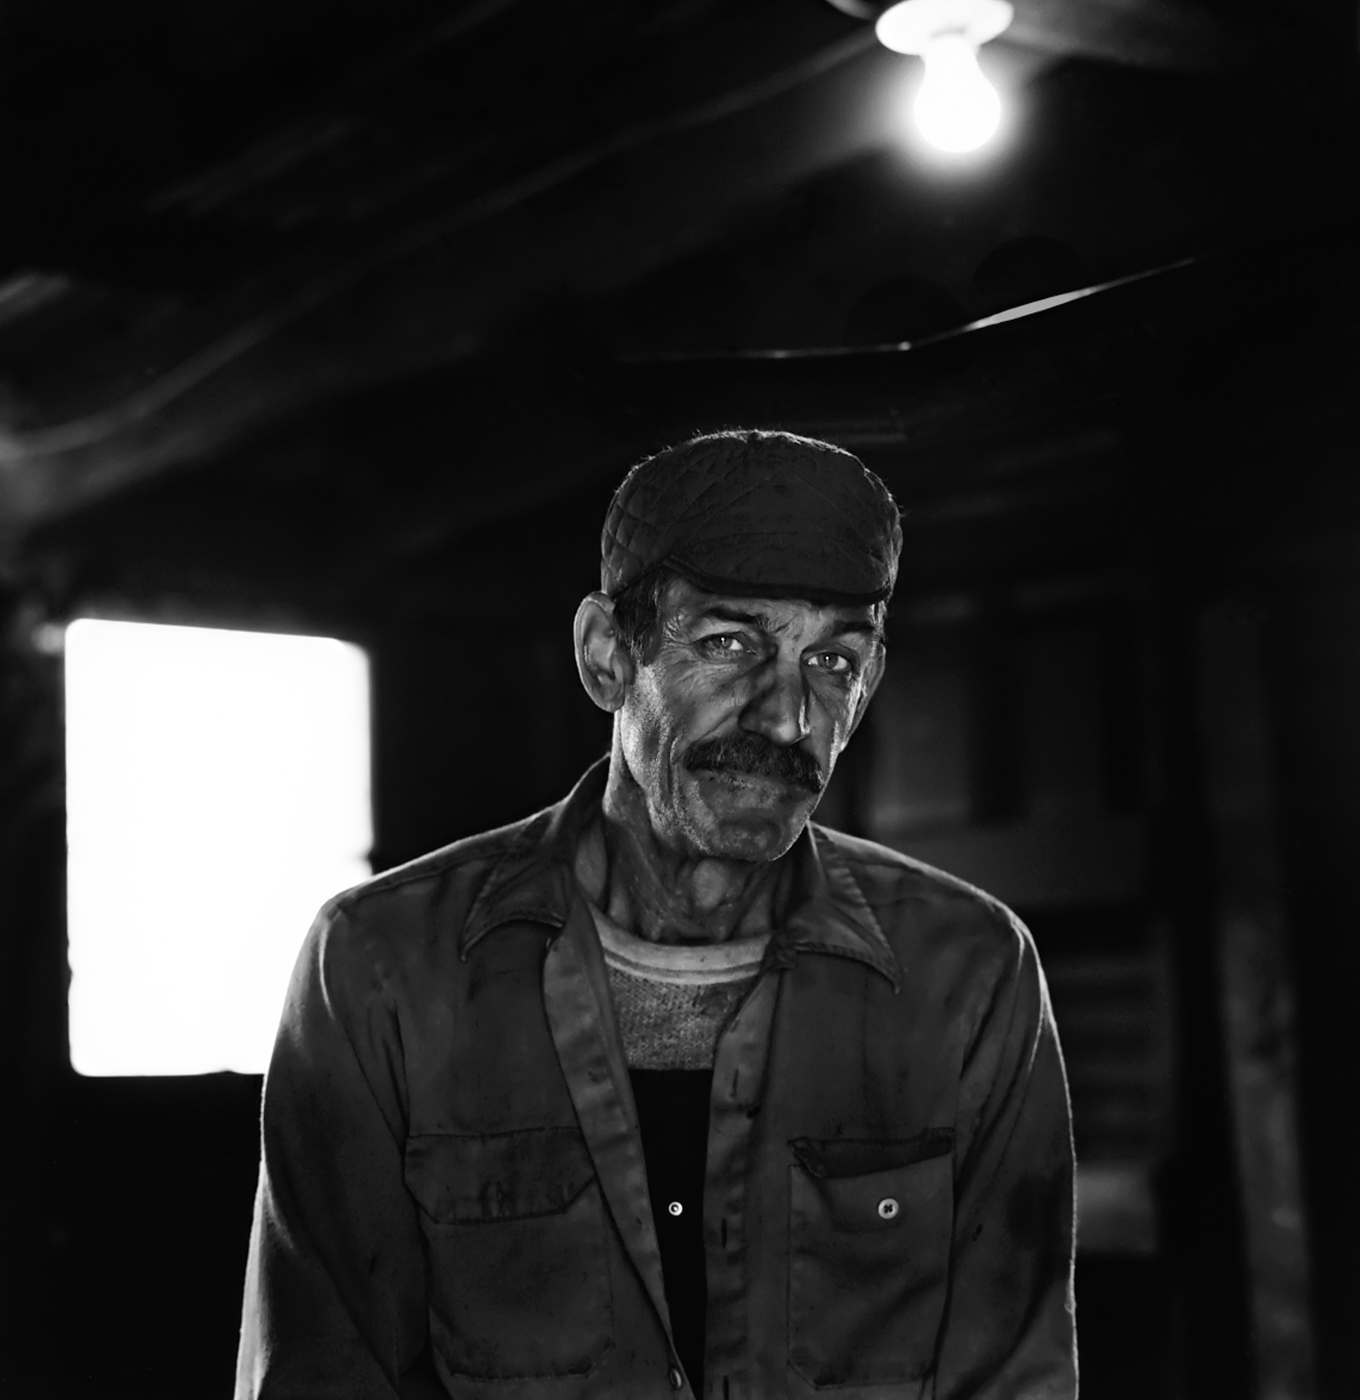 Farmer Bob, photographed for my project Hard Coal about the last independent anthracite miners